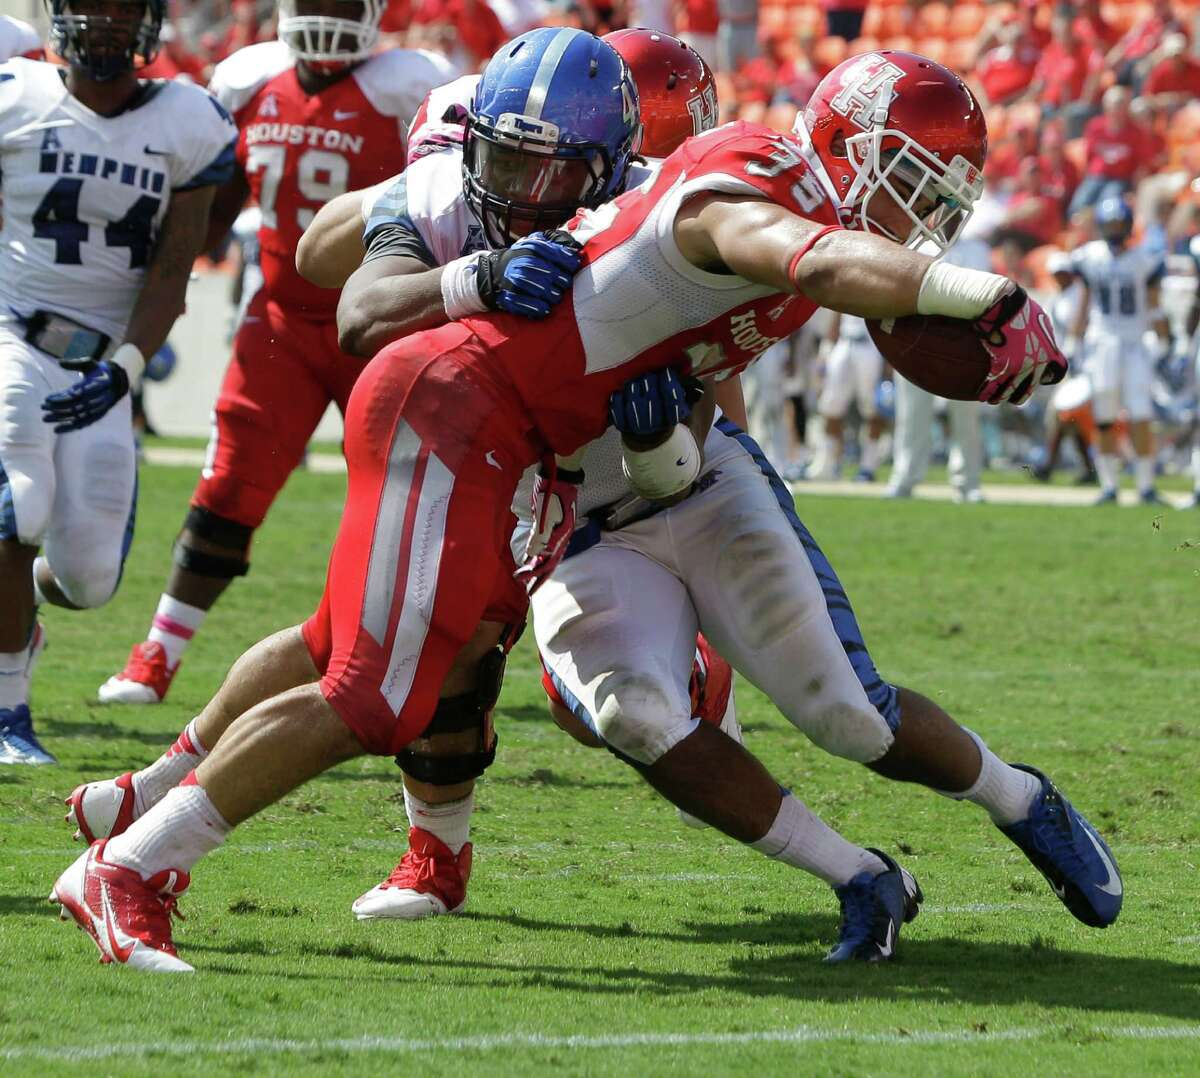 Kenneth Farrow muscles his way past Memphis' Anthony Brown to score on a 6-yard run to give UH some breathing room in the fourth quarter.